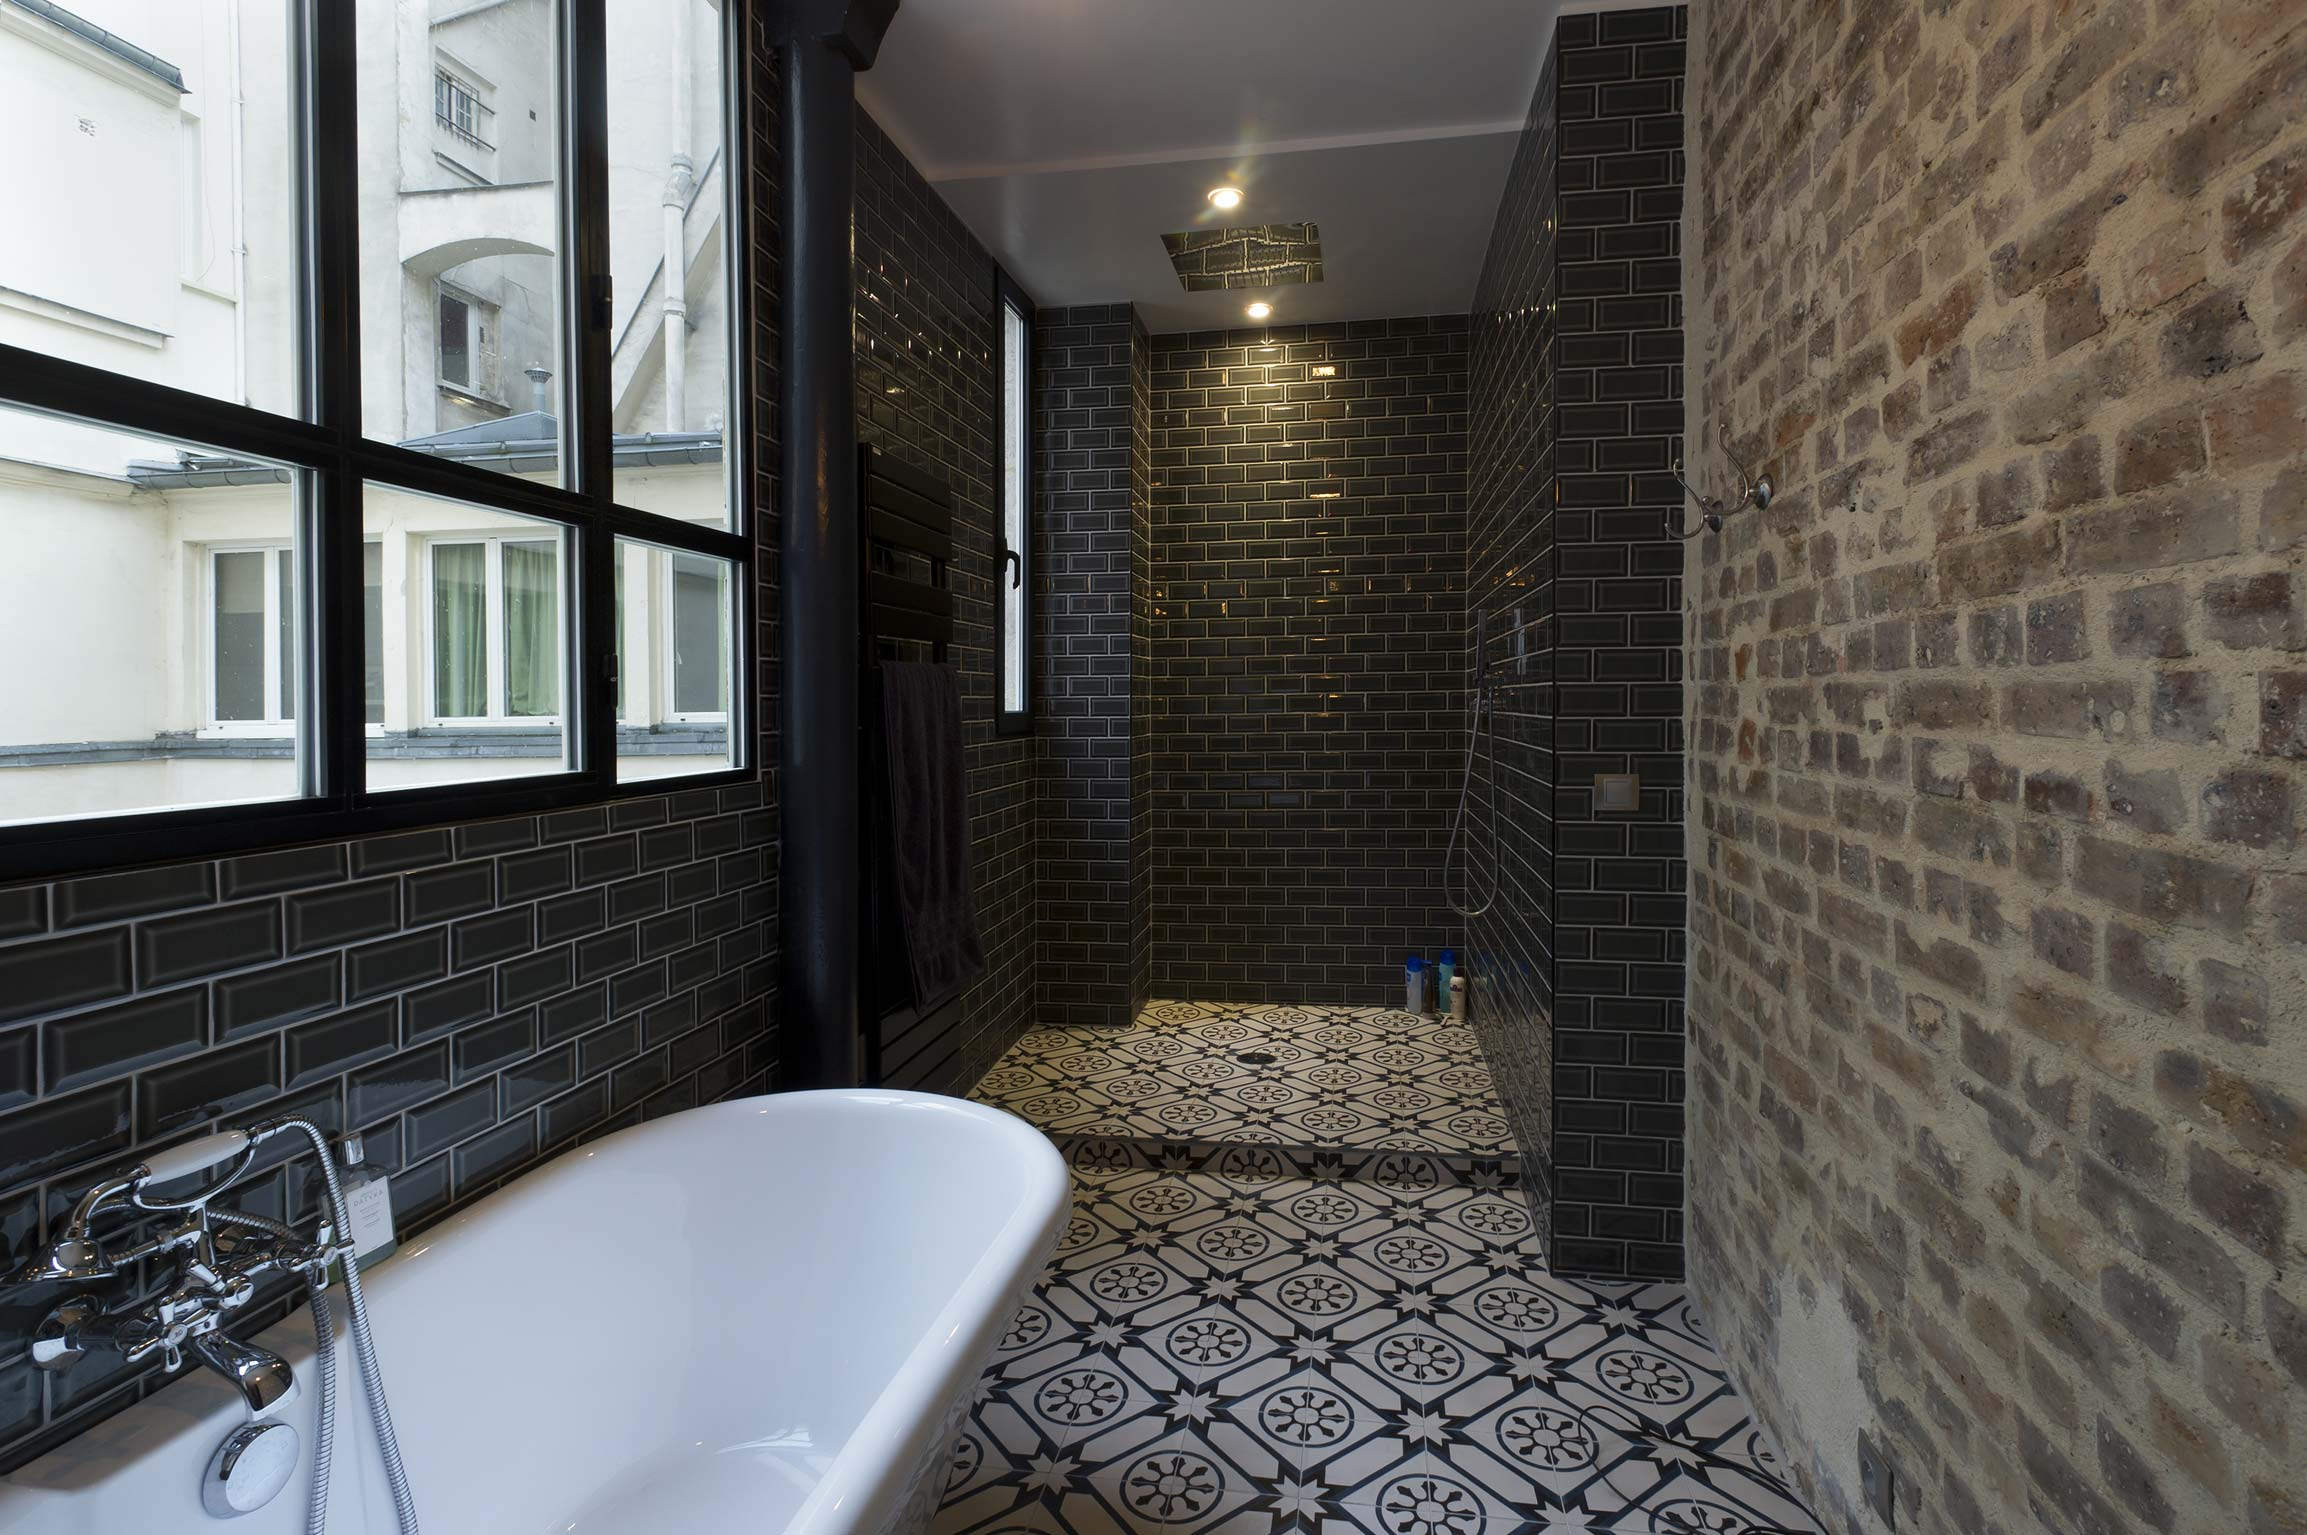 Douche l 39 italienne en carreau de ciment - Carreaux de ciment douche italienne ...